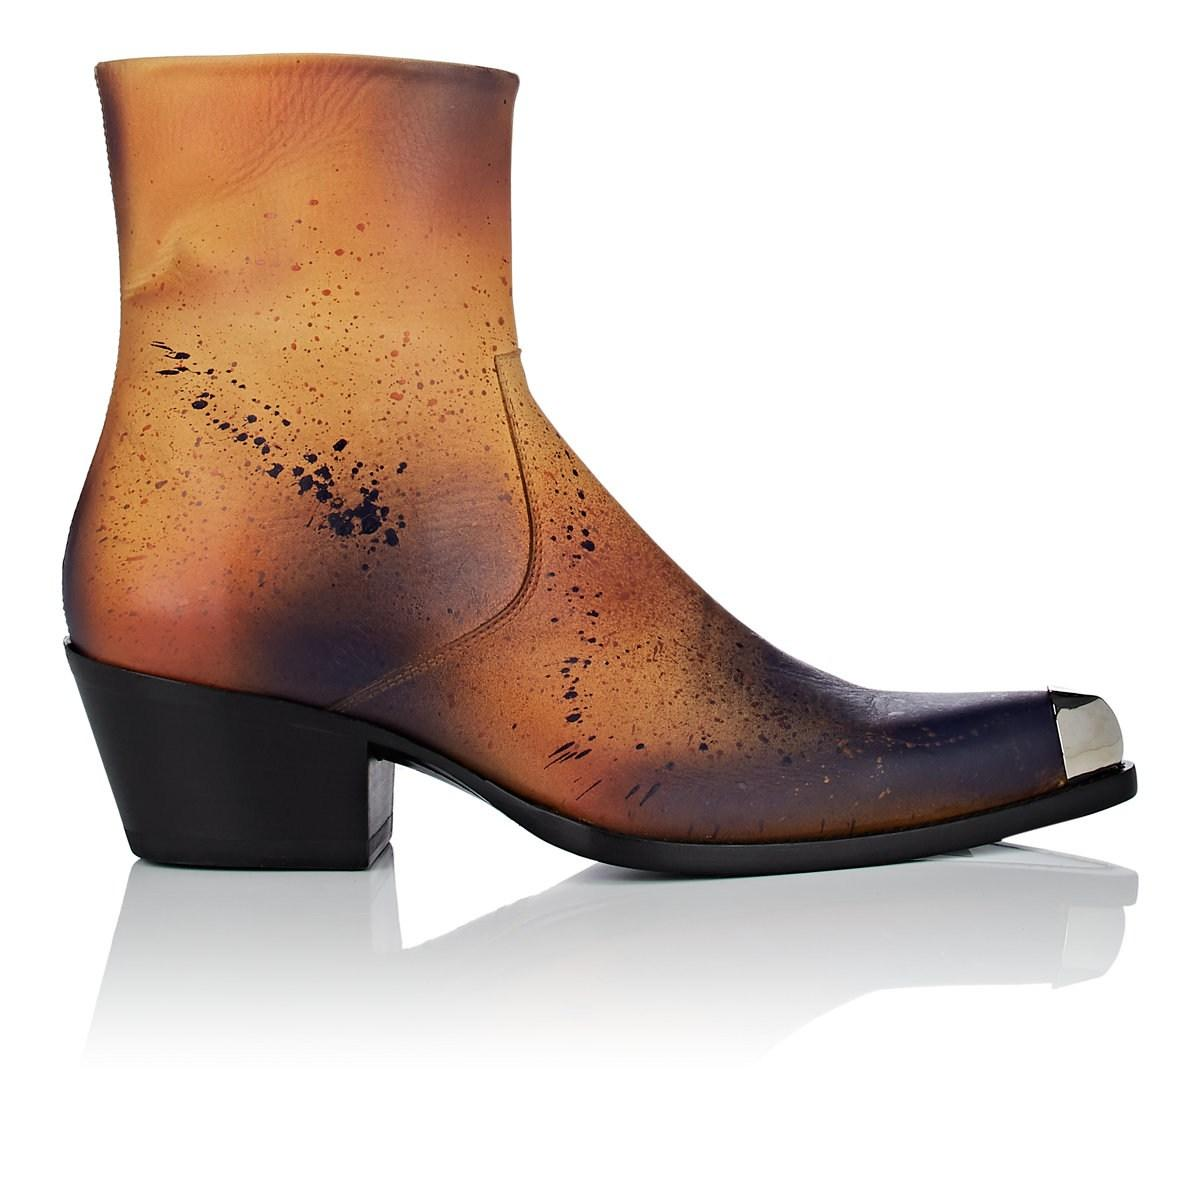 e61051f8b Lyst - CALVIN KLEIN 205W39NYC Metal-tipped Leather Boots in Brown ...